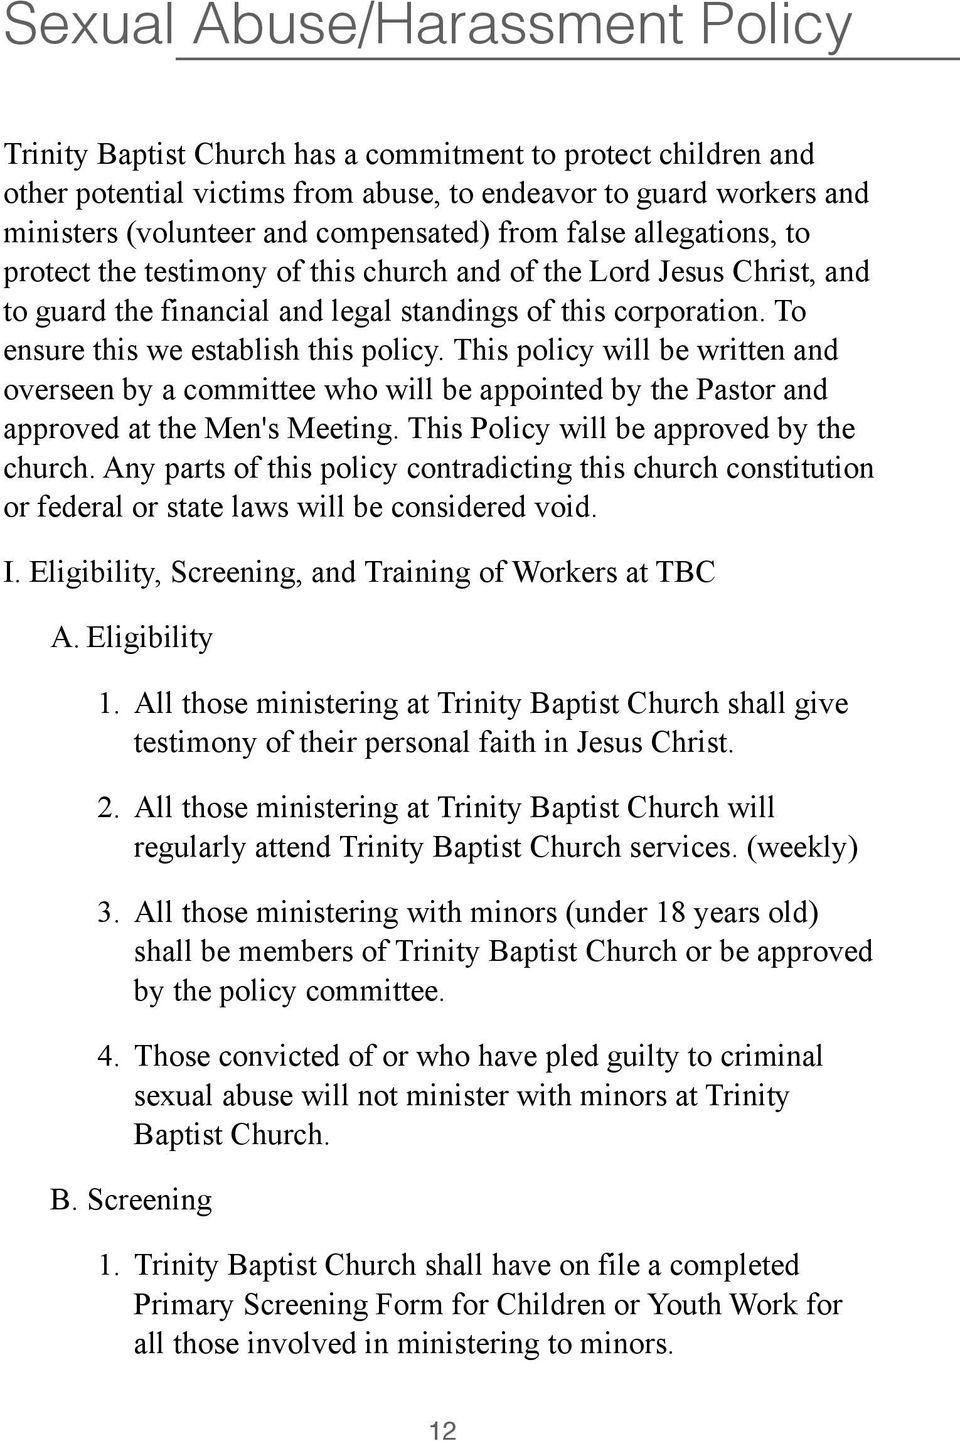 To ensure this we establish this policy. This policy will be written and overseen by a committee who will be appointed by the Pastor and approved at the Men's Meeting.